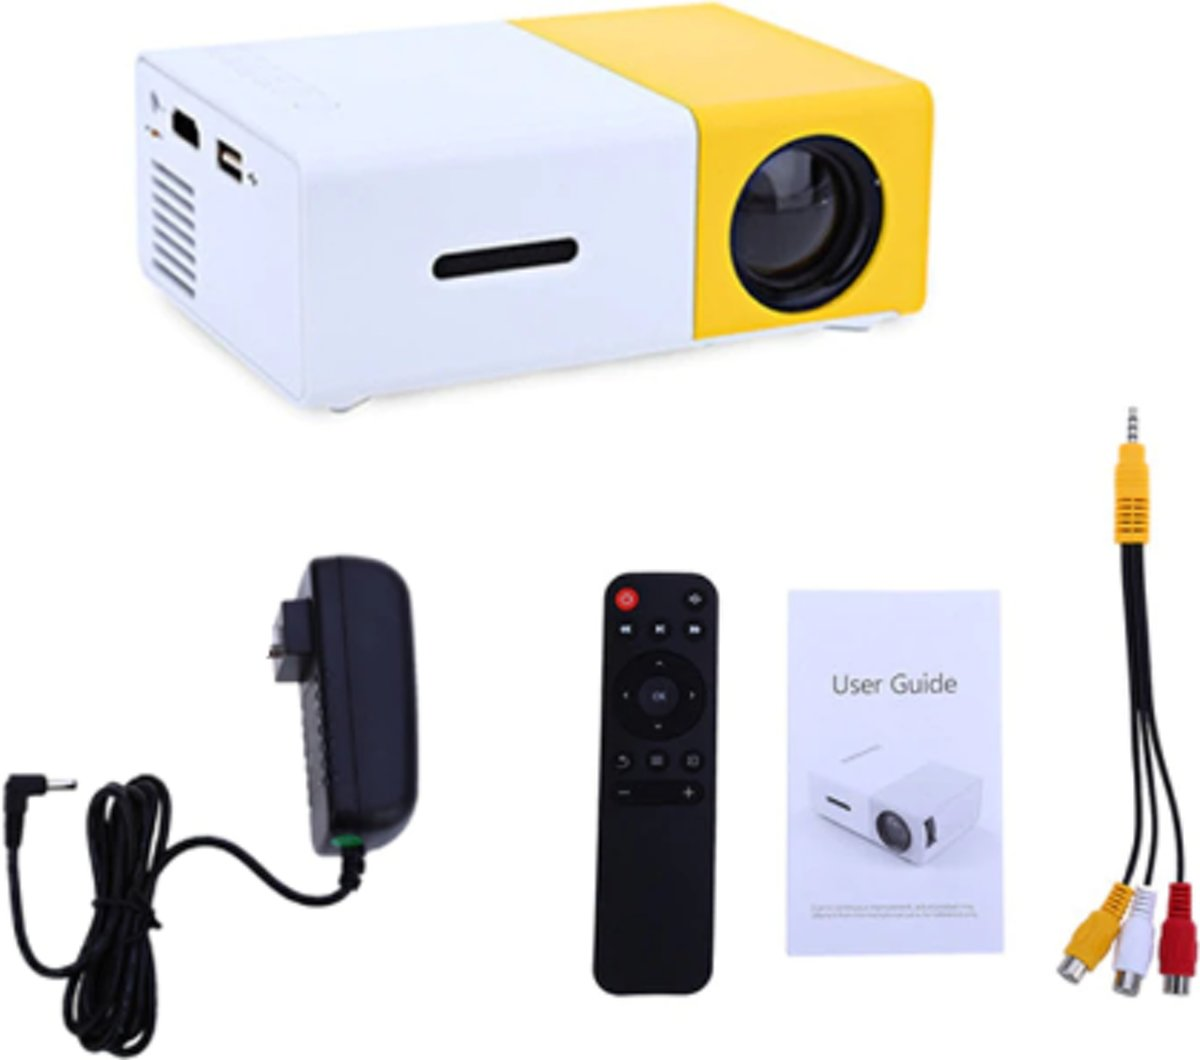 Mini Beamer - LED Projector - Beamer - Mini Projector - HDMI - USB kopen